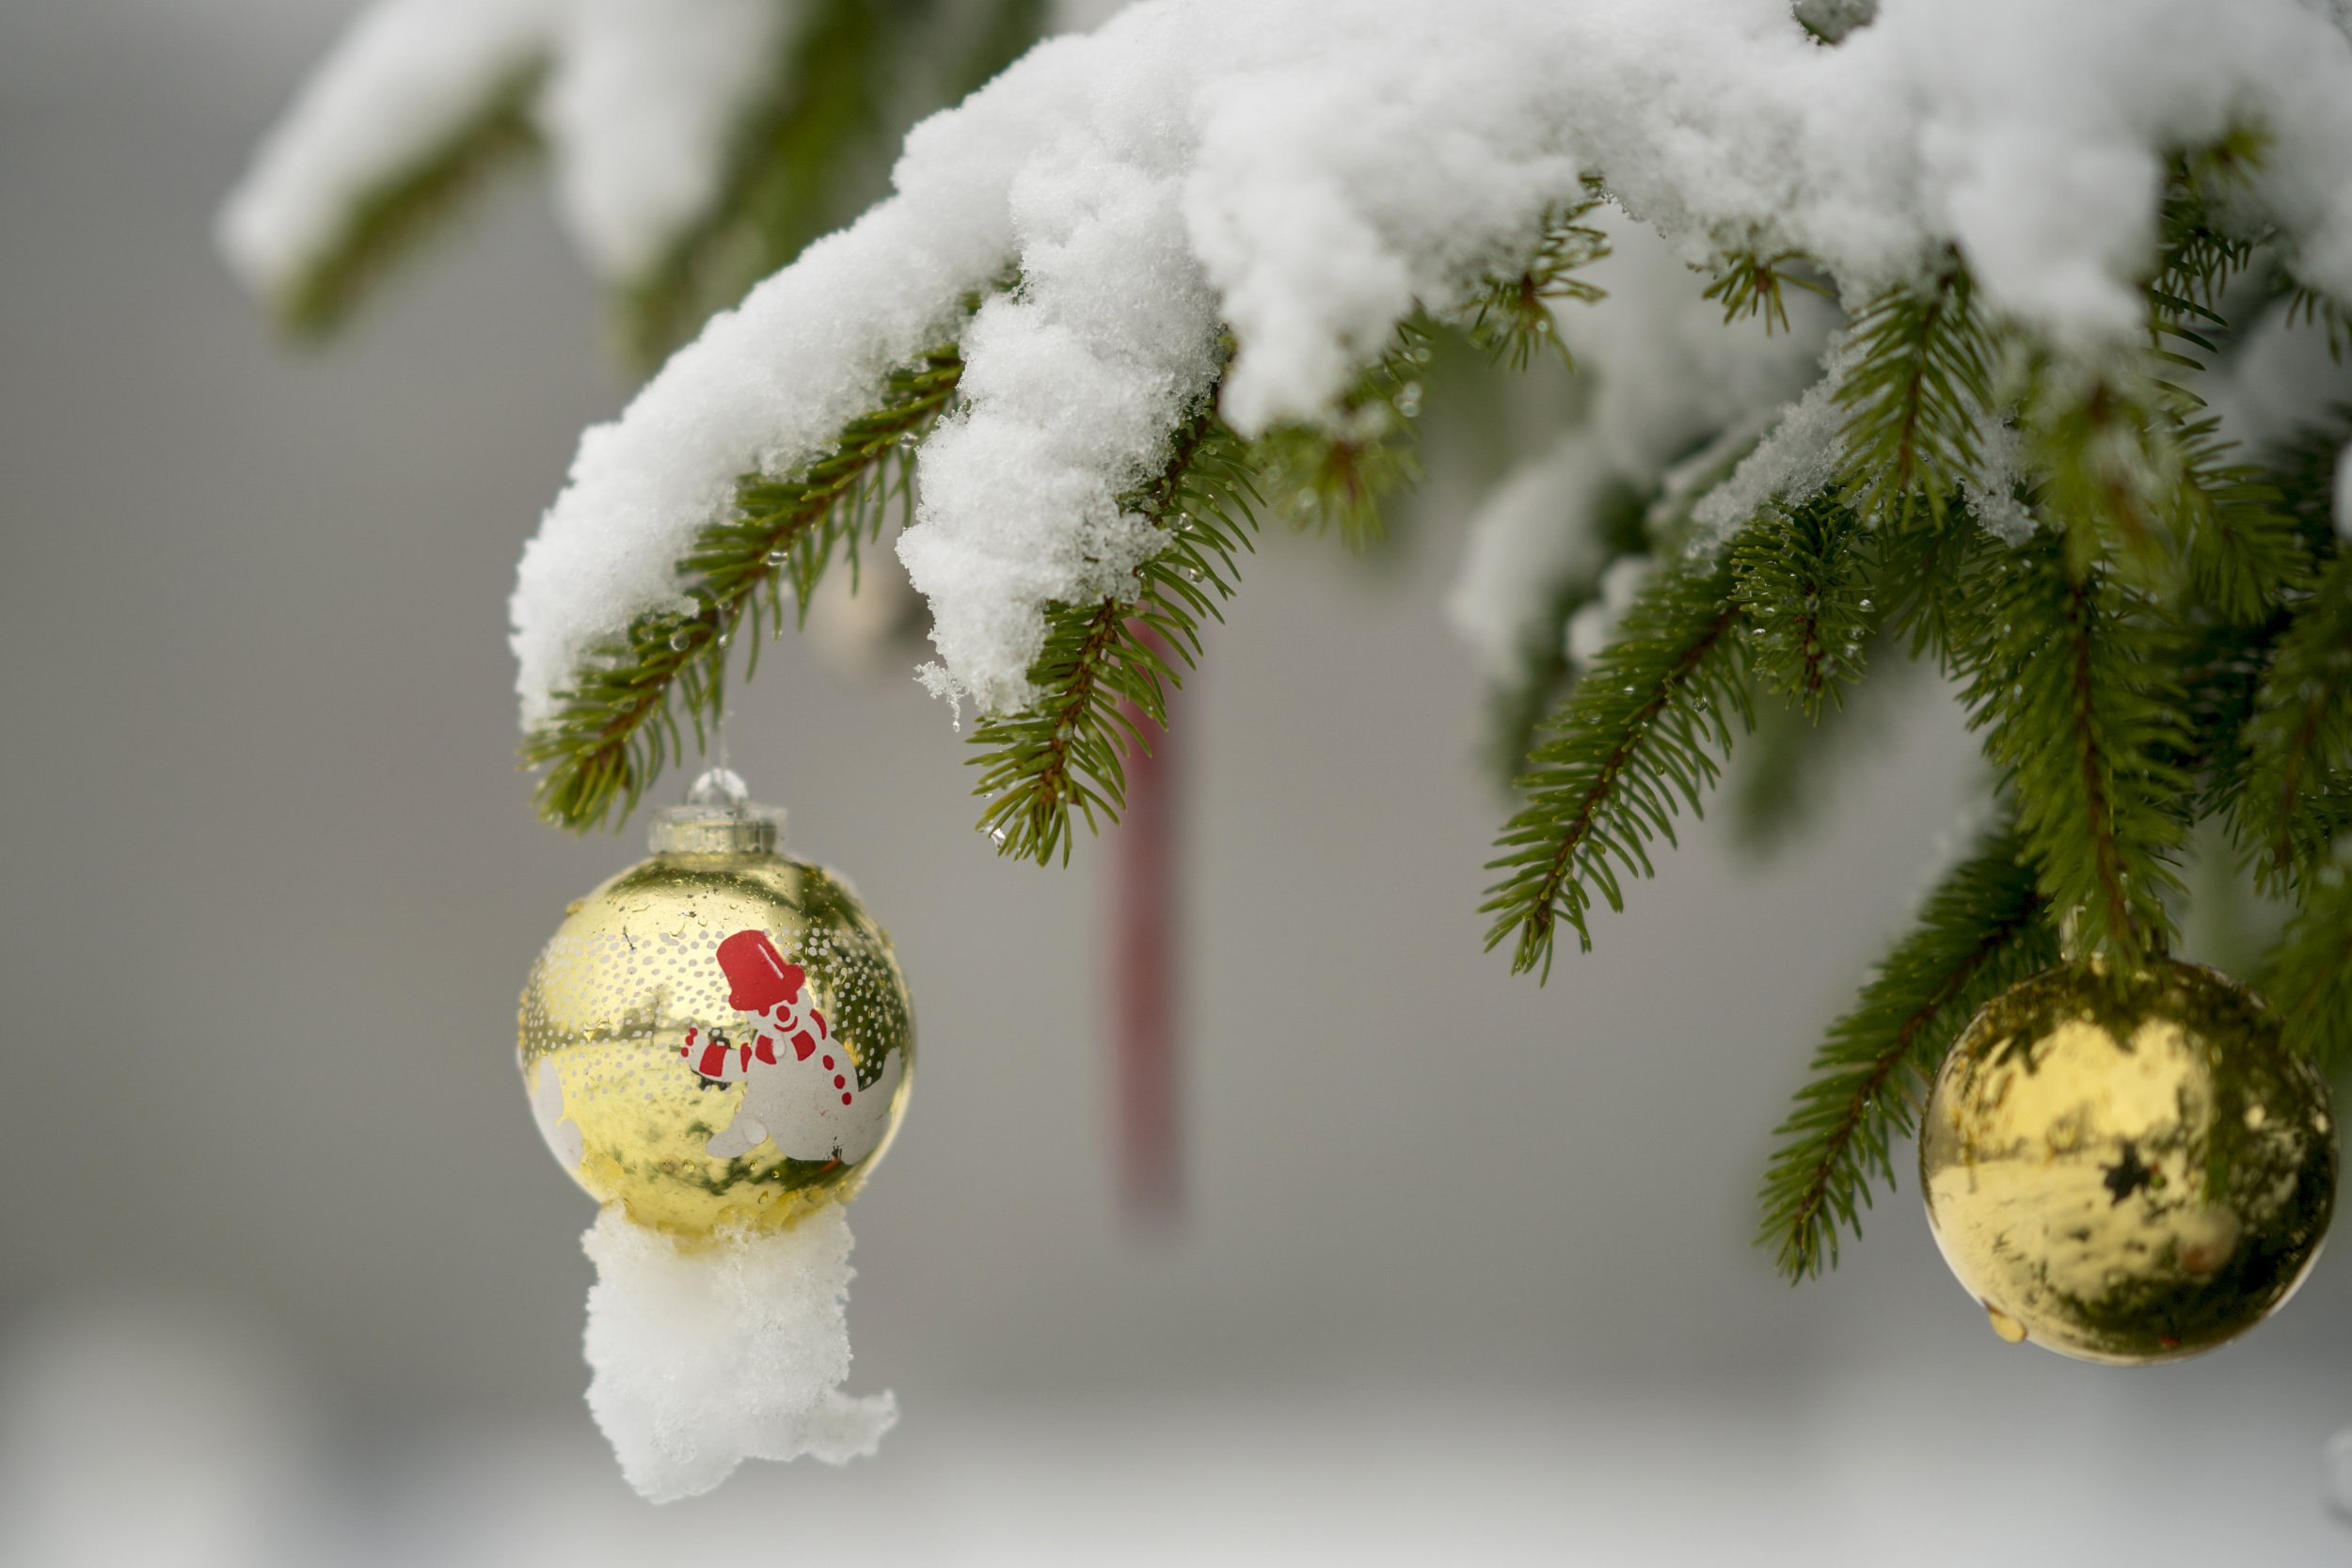 tree with ornament